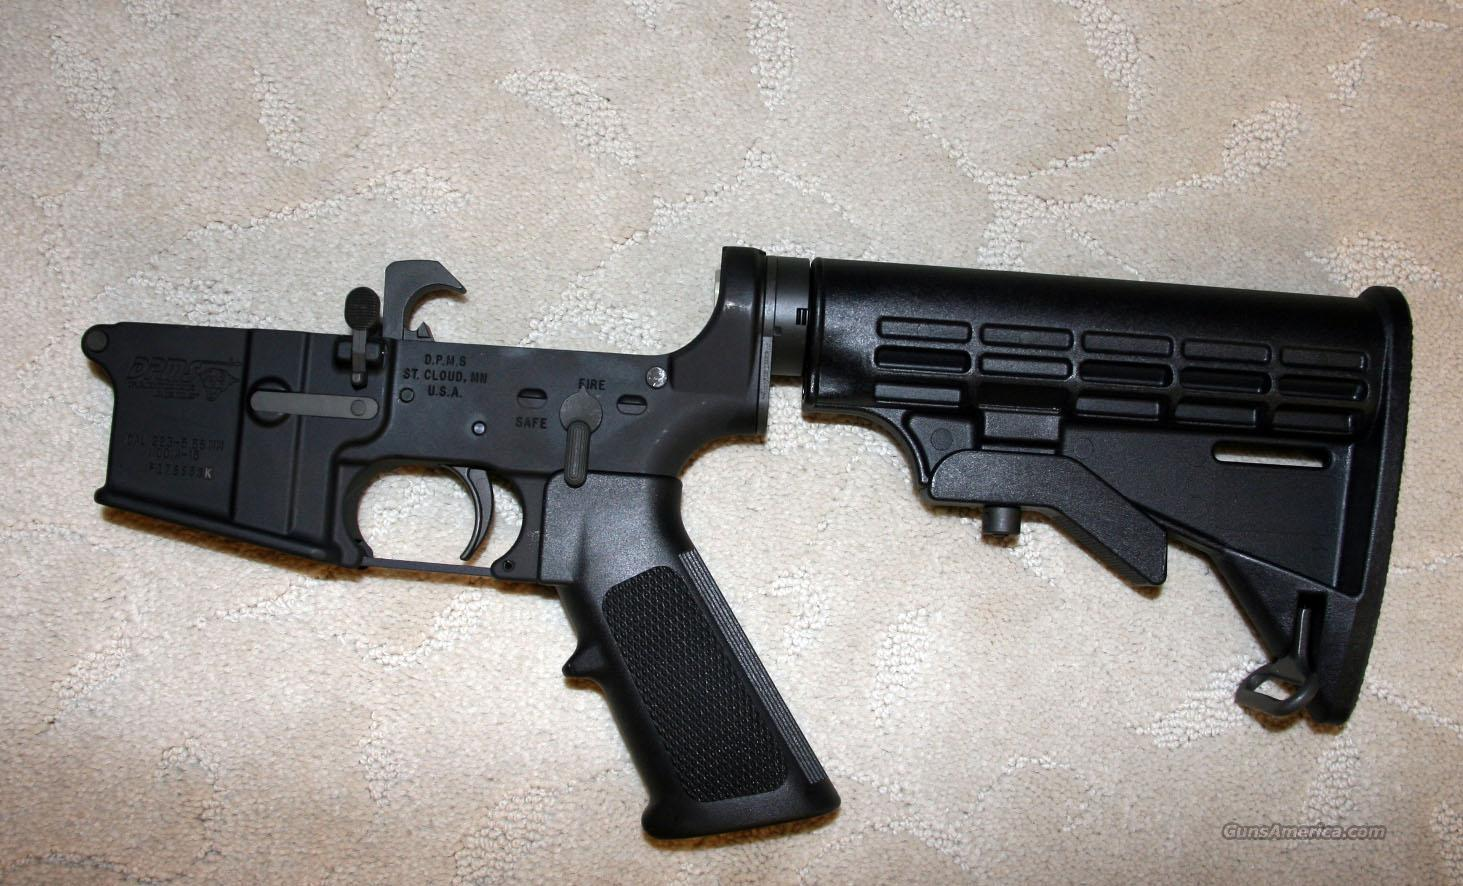 New DPMS complete Lower  Guns > Rifles > DPMS - Panther Arms > Lower Only